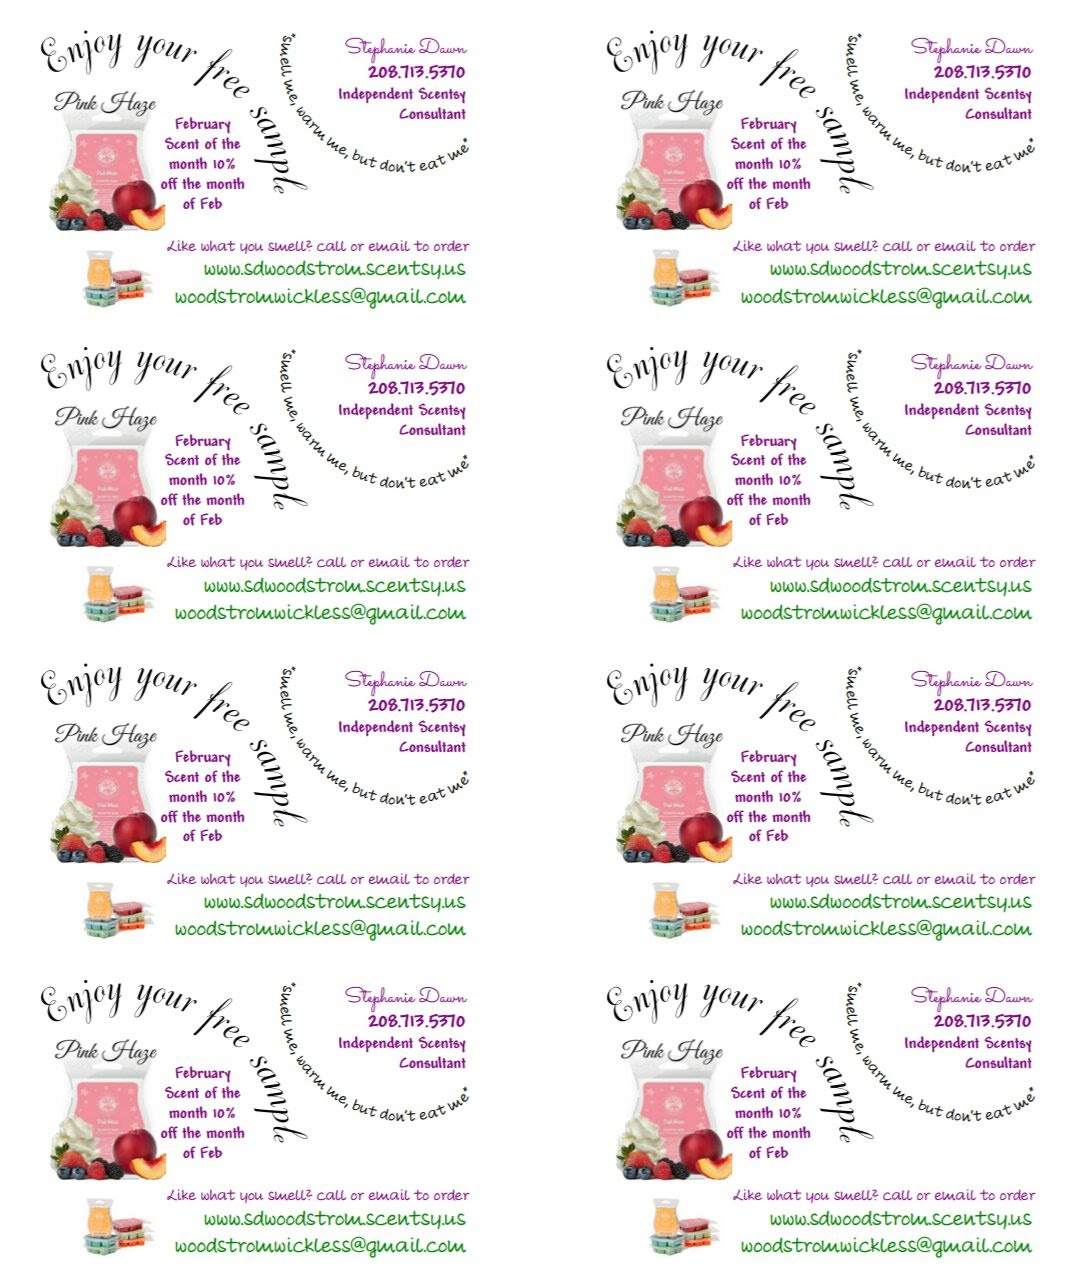 Free Printable Scentsy Business Cards | Download Them Or Print - Free Printable Scentsy Business Cards